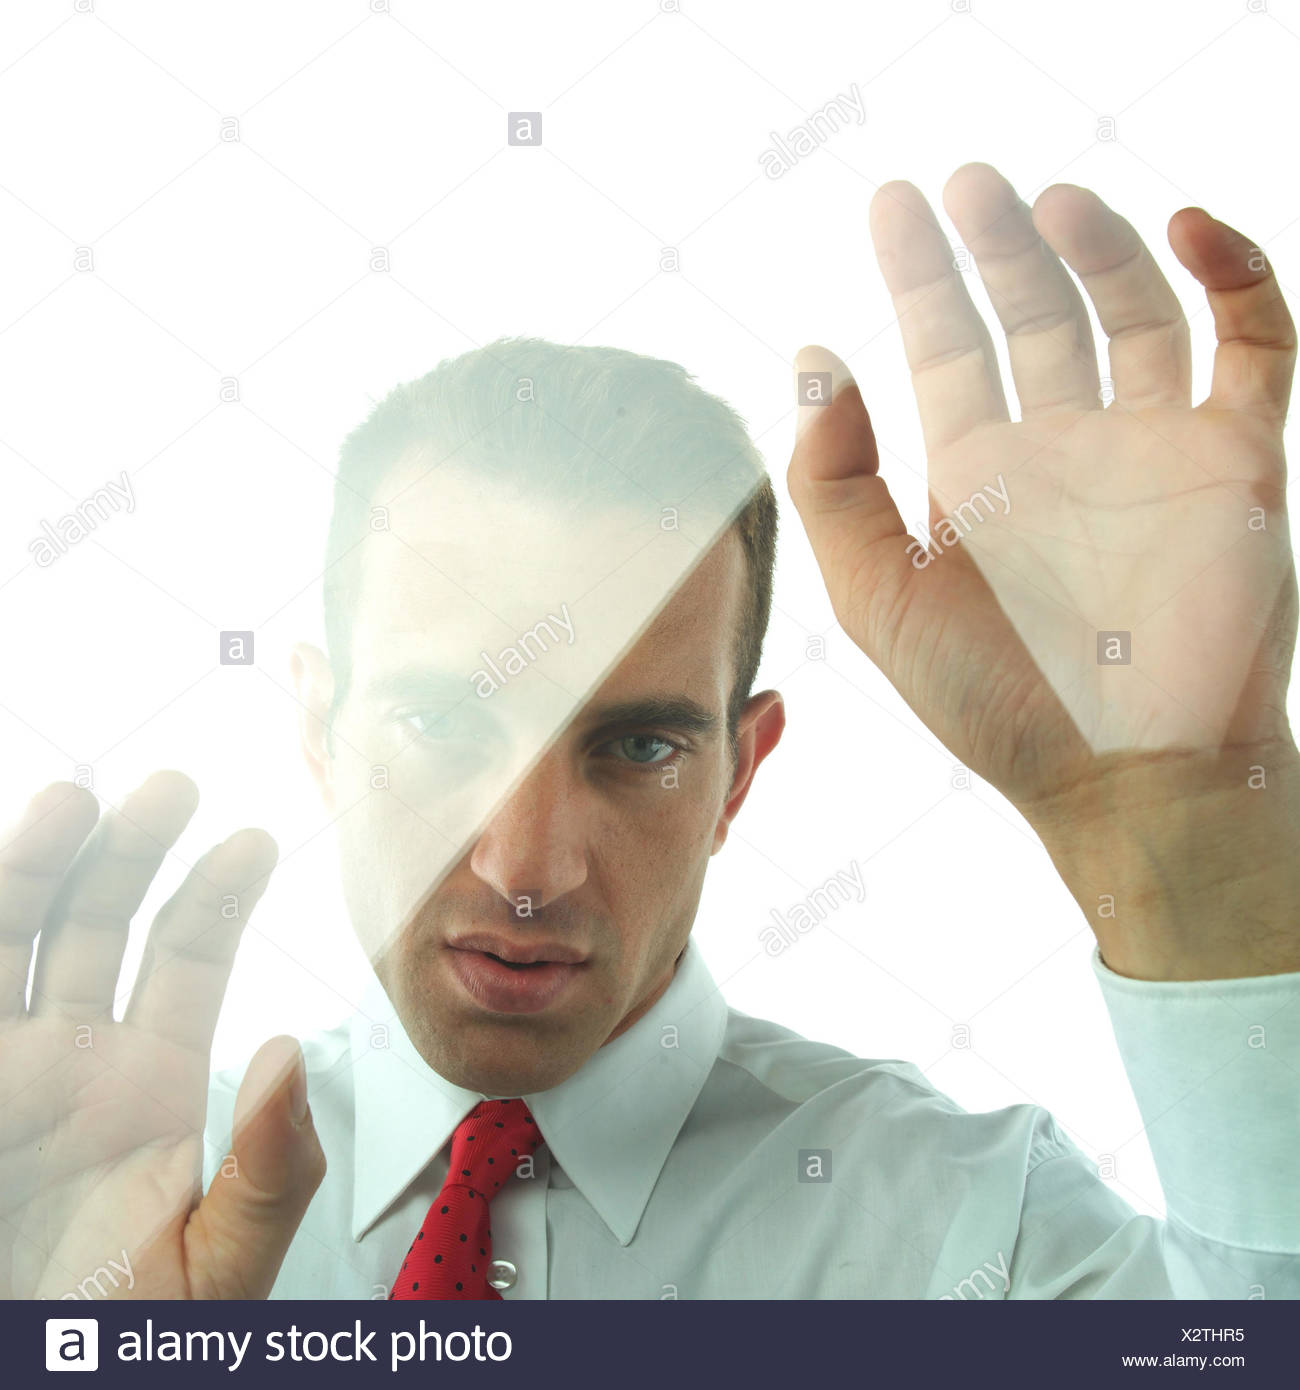 Man, gesture, windowpane, portrait, model released, very close, mood, expression, seriously, thoughtful, thoughtfulness, melancholy, melancholia, sadness, sadly, loneliness, lonely, isolates, isolation, hands, slice, surprises, in bewilderment, bewilderment, confused - Stock Image